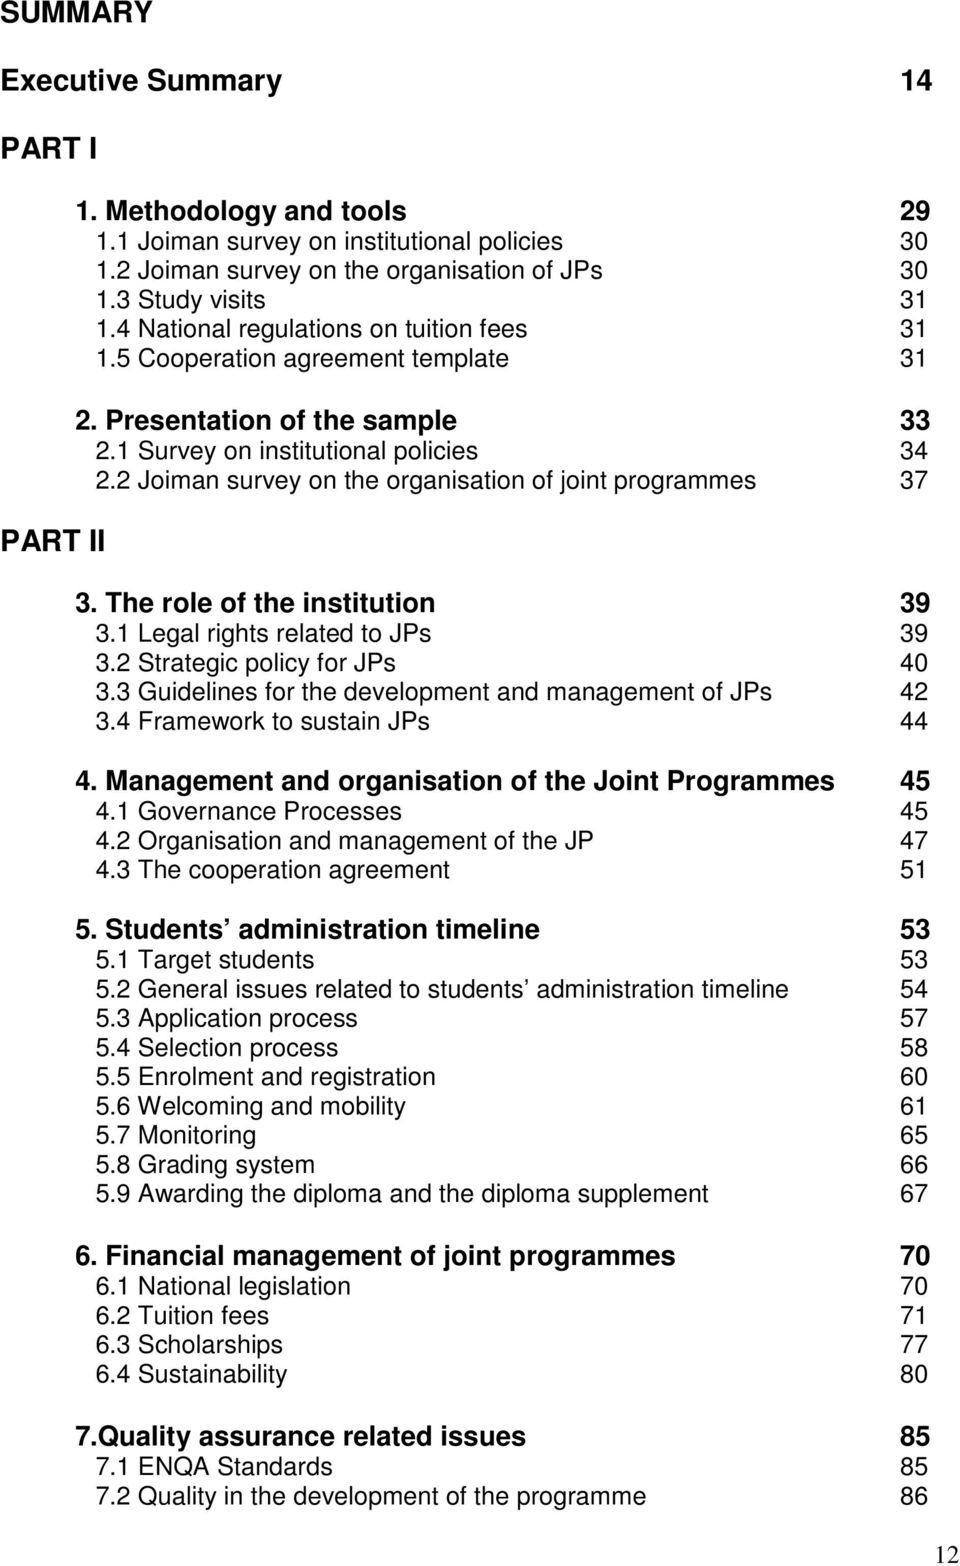 2 Joiman survey on the organisation of joint programmes 37 3. The role of the institution 39 3.1 Legal rights related to JPs 39 3.2 Strategic policy for JPs 40 3.